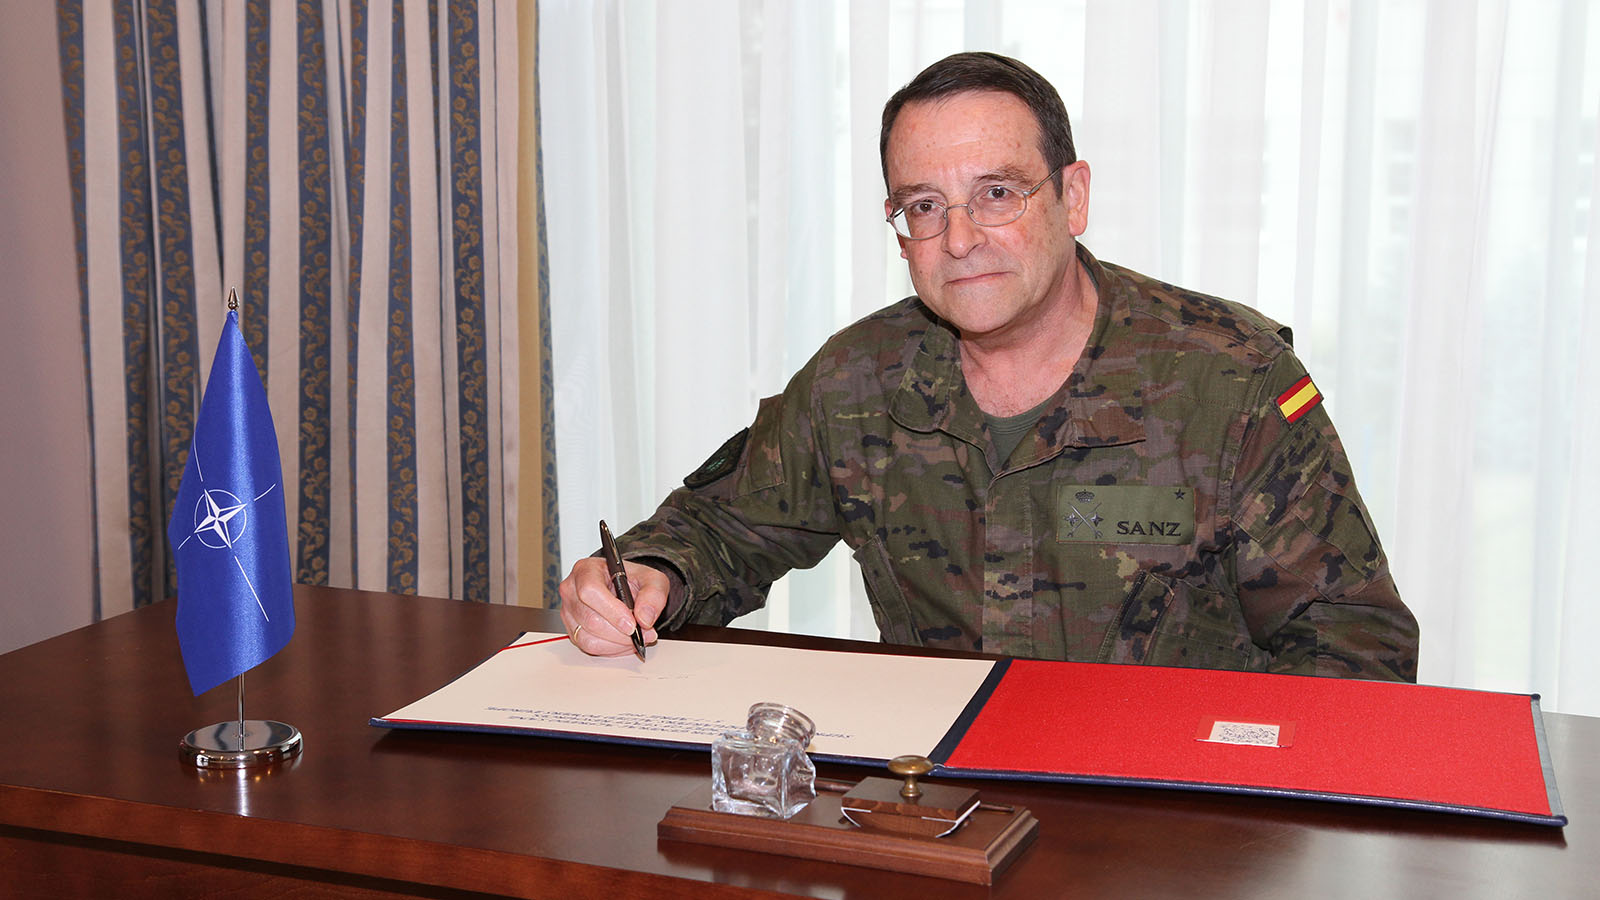 Major General Sanz Explores JFTC